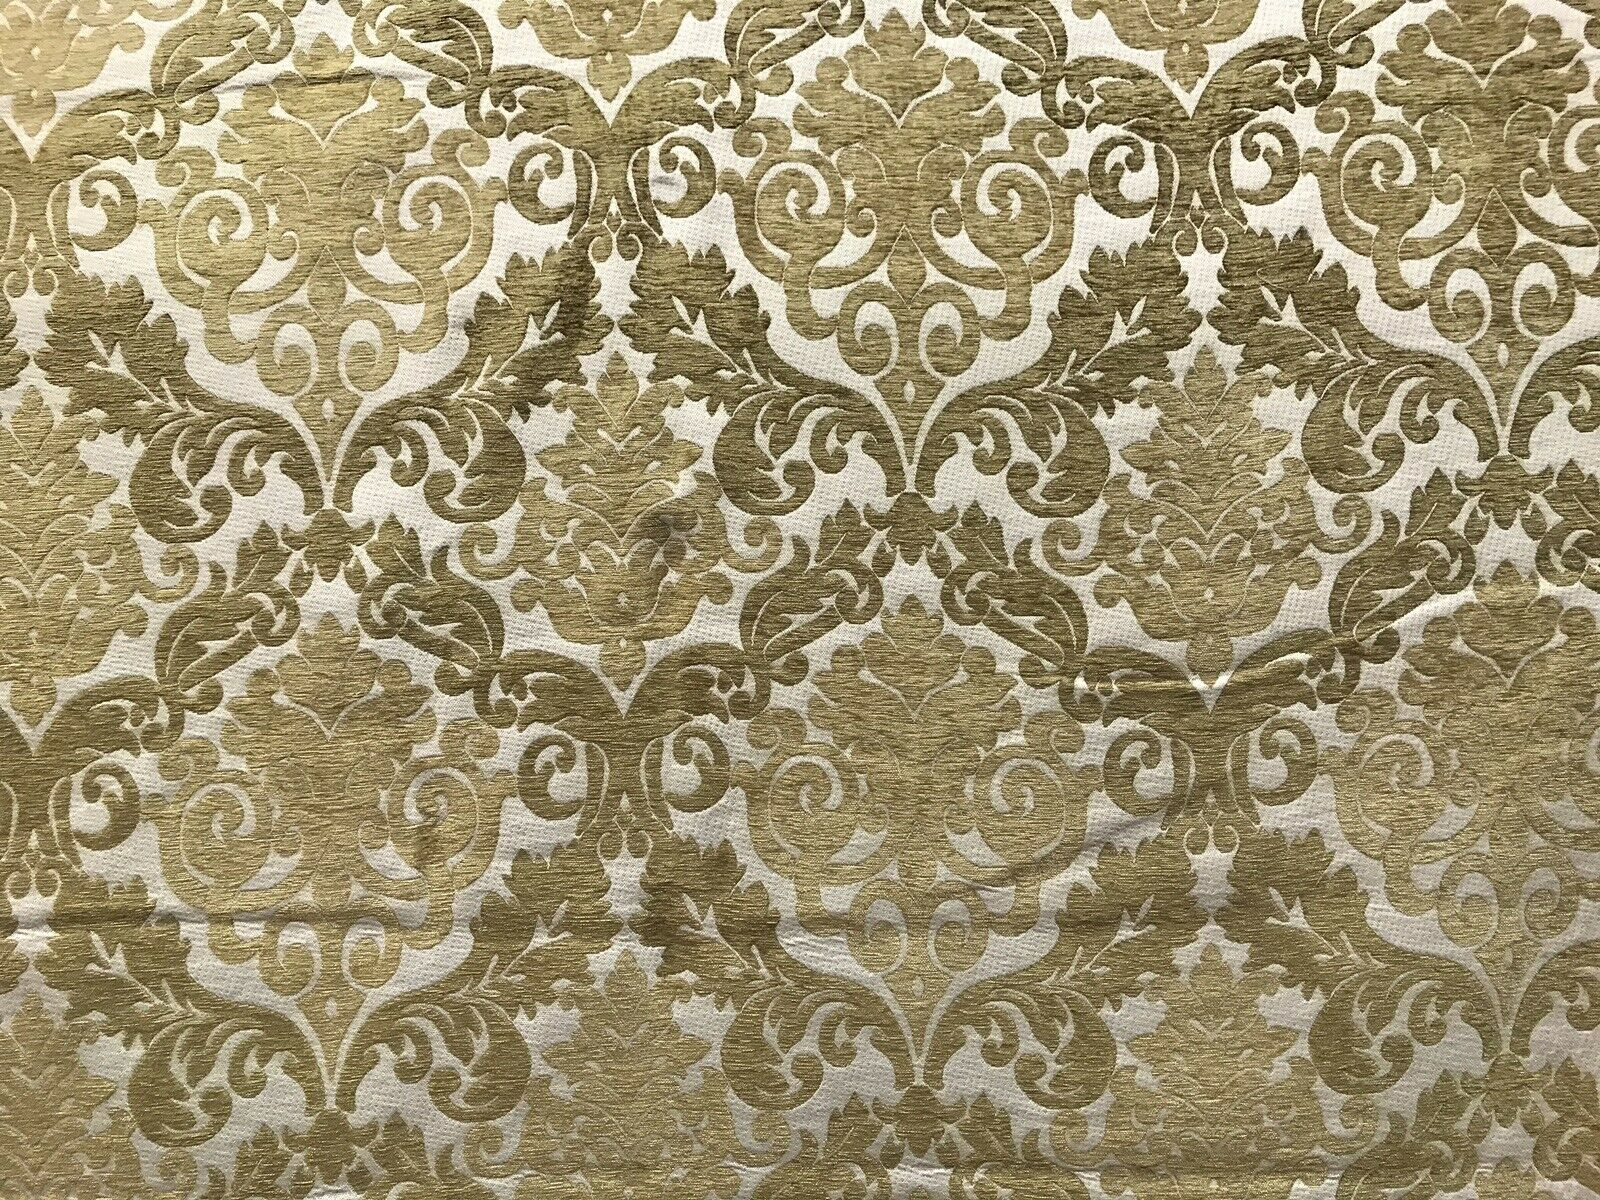 NEW Double Sided Burnout Chenille Velvet Fabric- Mustard Ivory Upholstery Damask